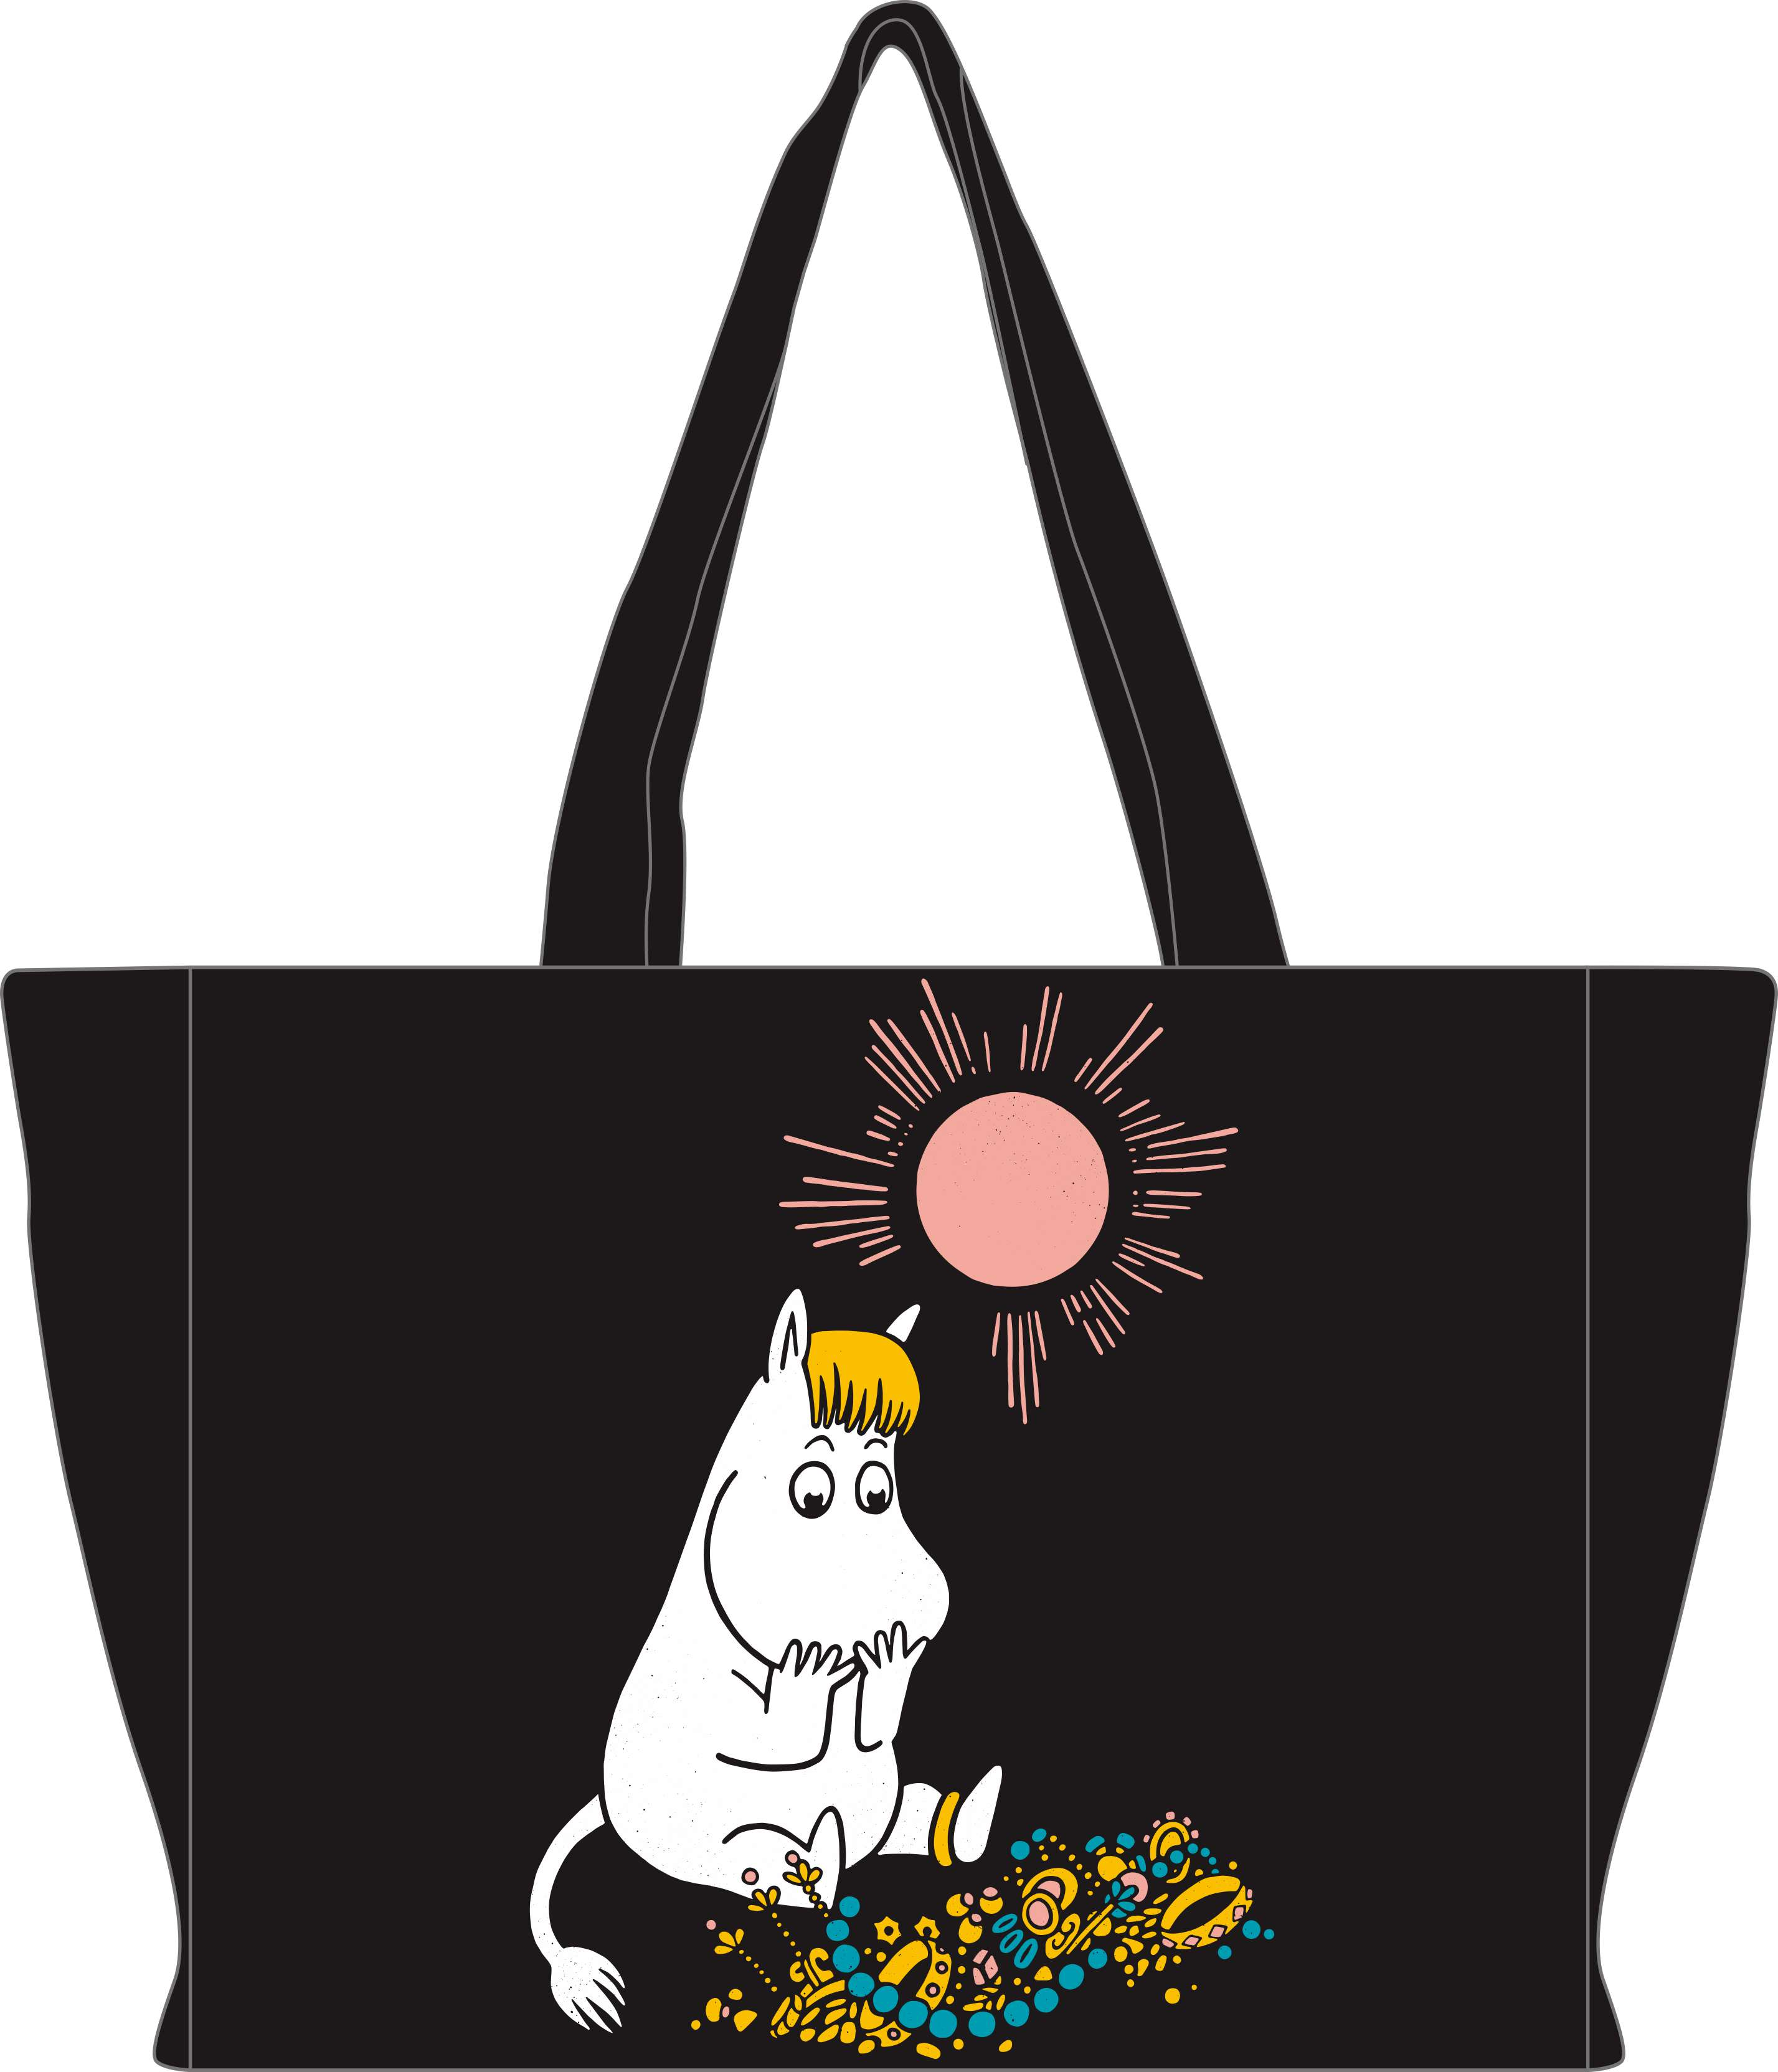 Anglo-Nordic Moomin Fabric shopping/beach bag 36x29x11